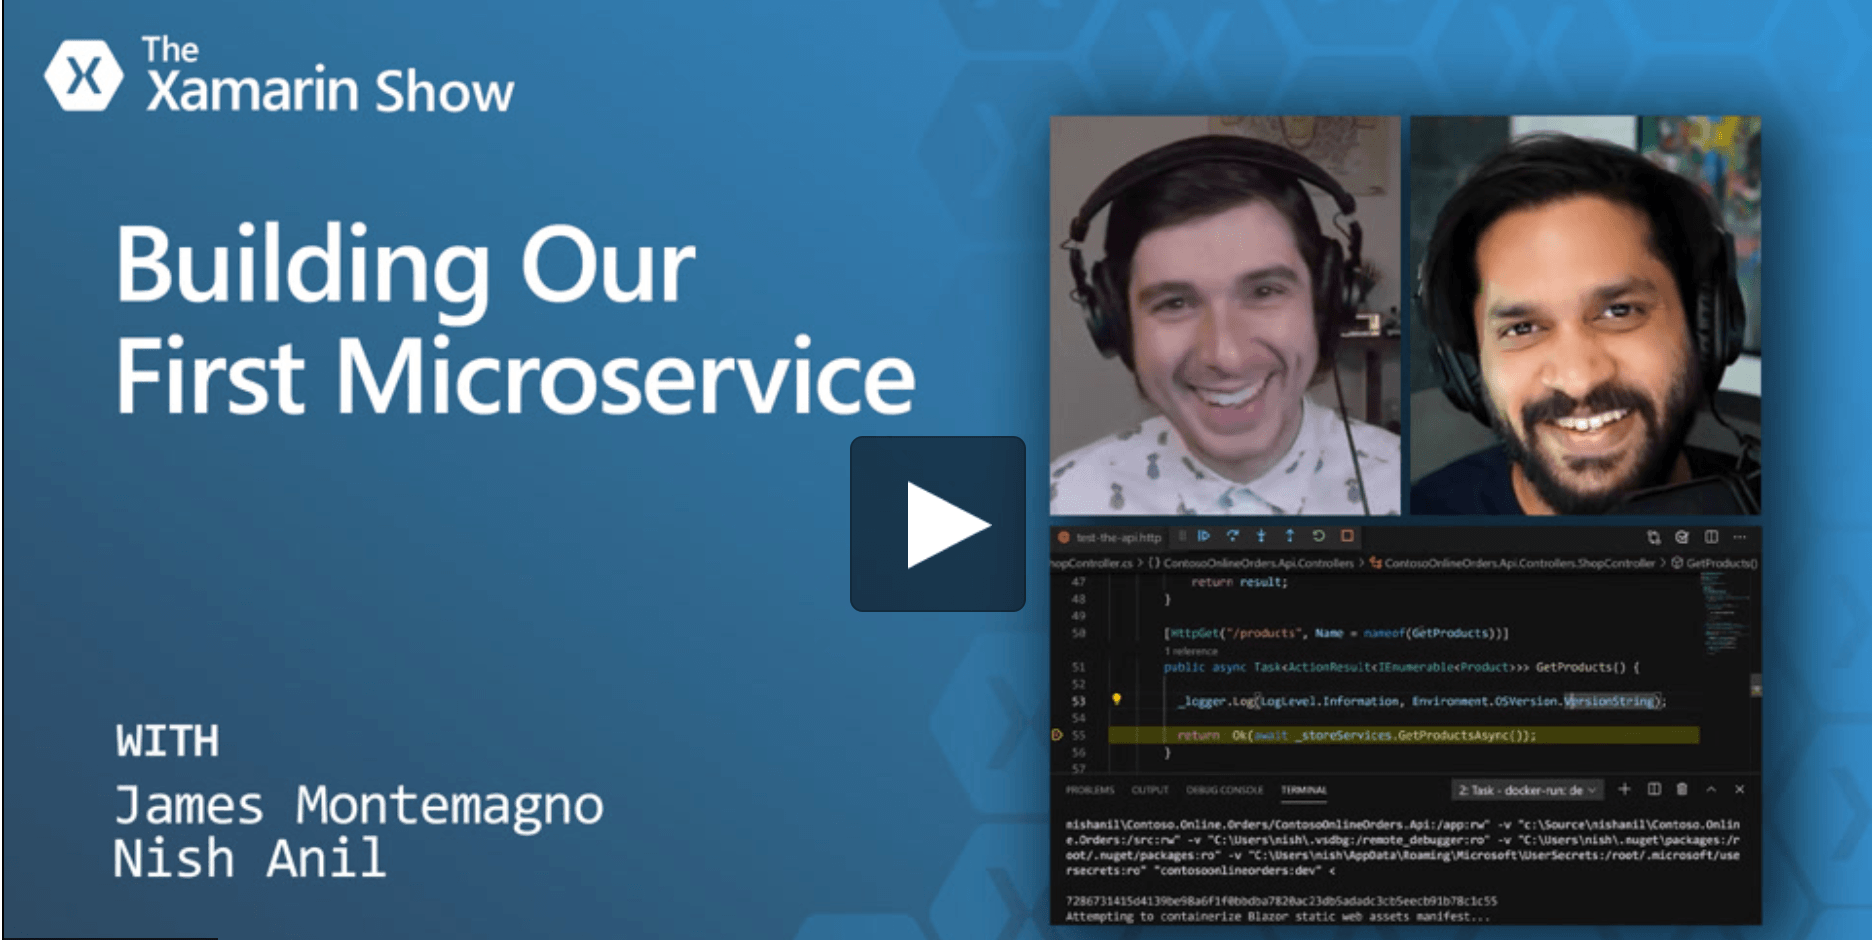 A screengrab of the video of the Xamarin Show episide 'Building Our First Microservice' before it is played.